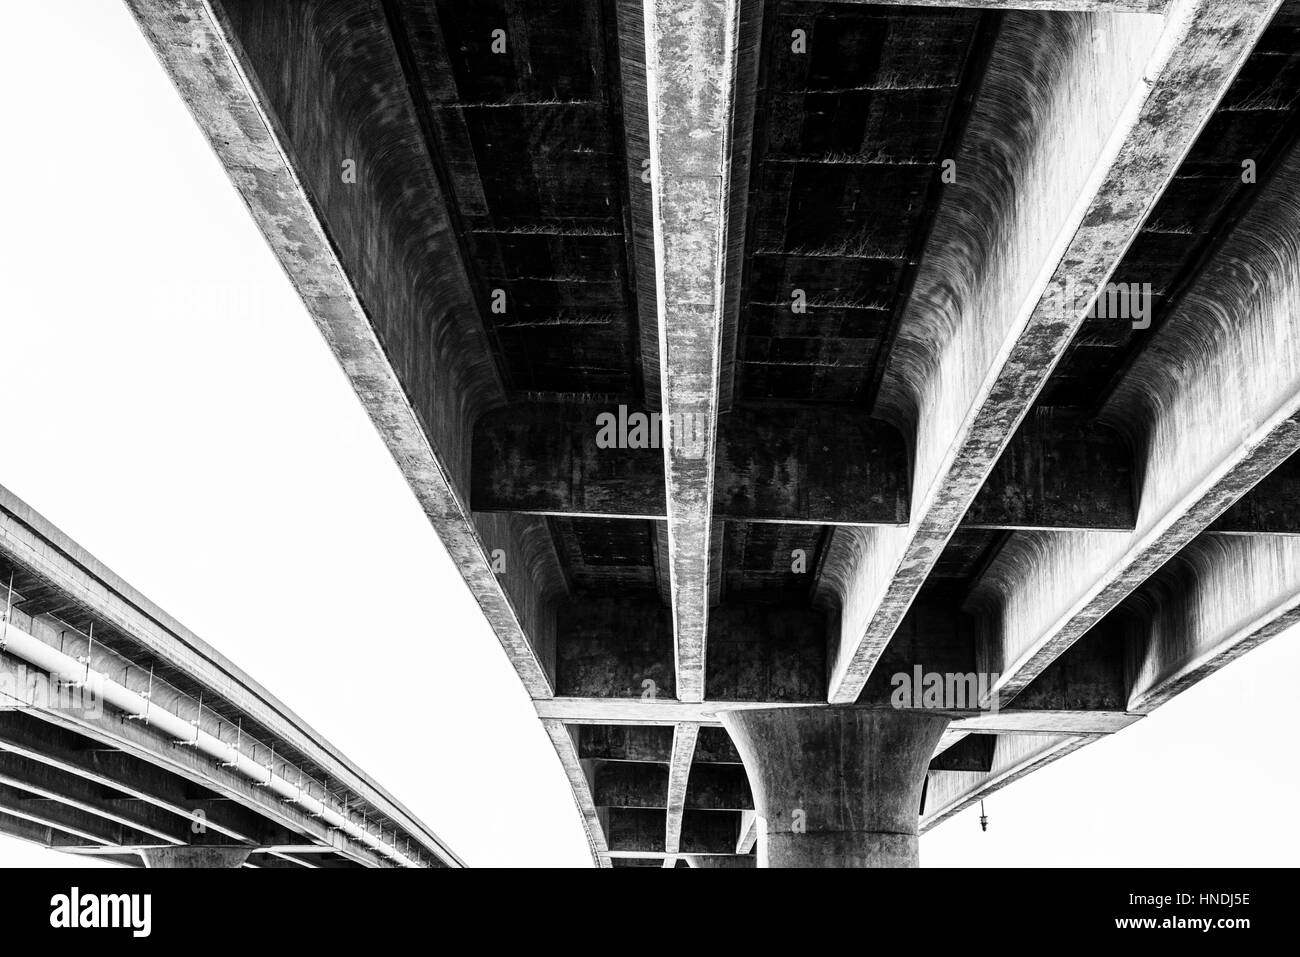 Ingraham Street Bridge, San Diego, California, USA. Stock Photo